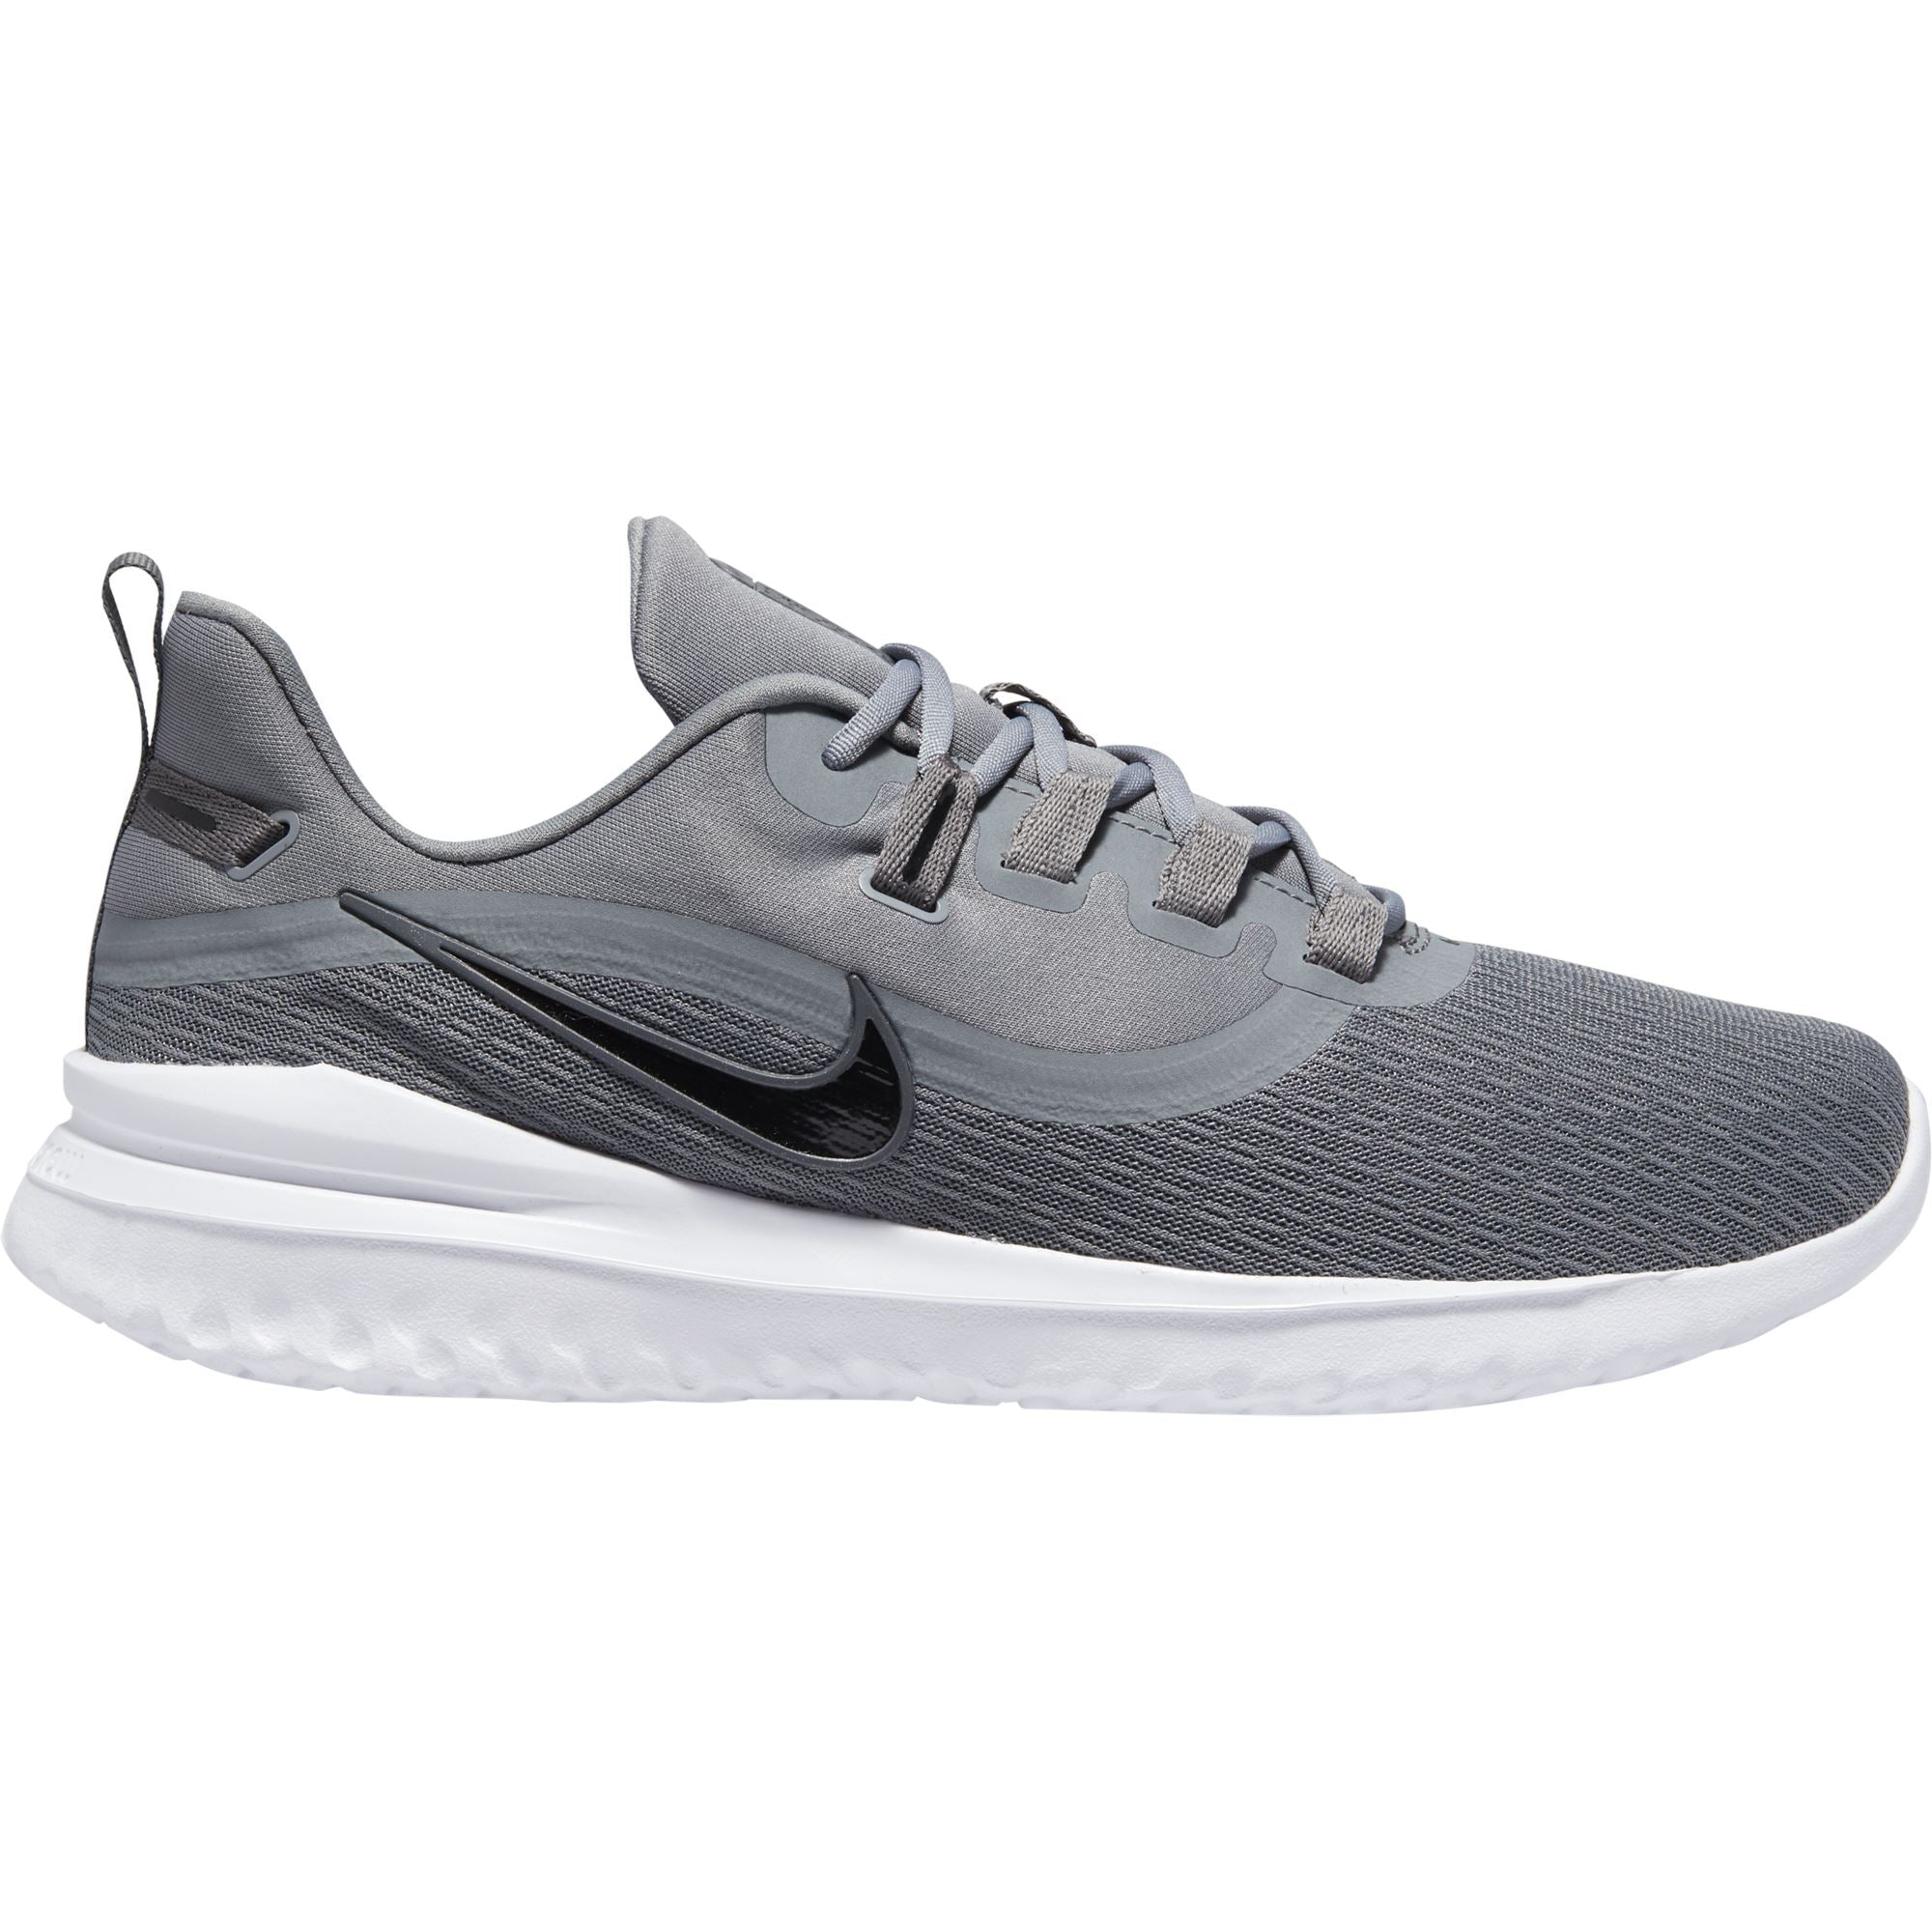 Nike Mens Renew Rival 2 - Cool Grey/Black-Dark Grey-White Q3NIKE Nike